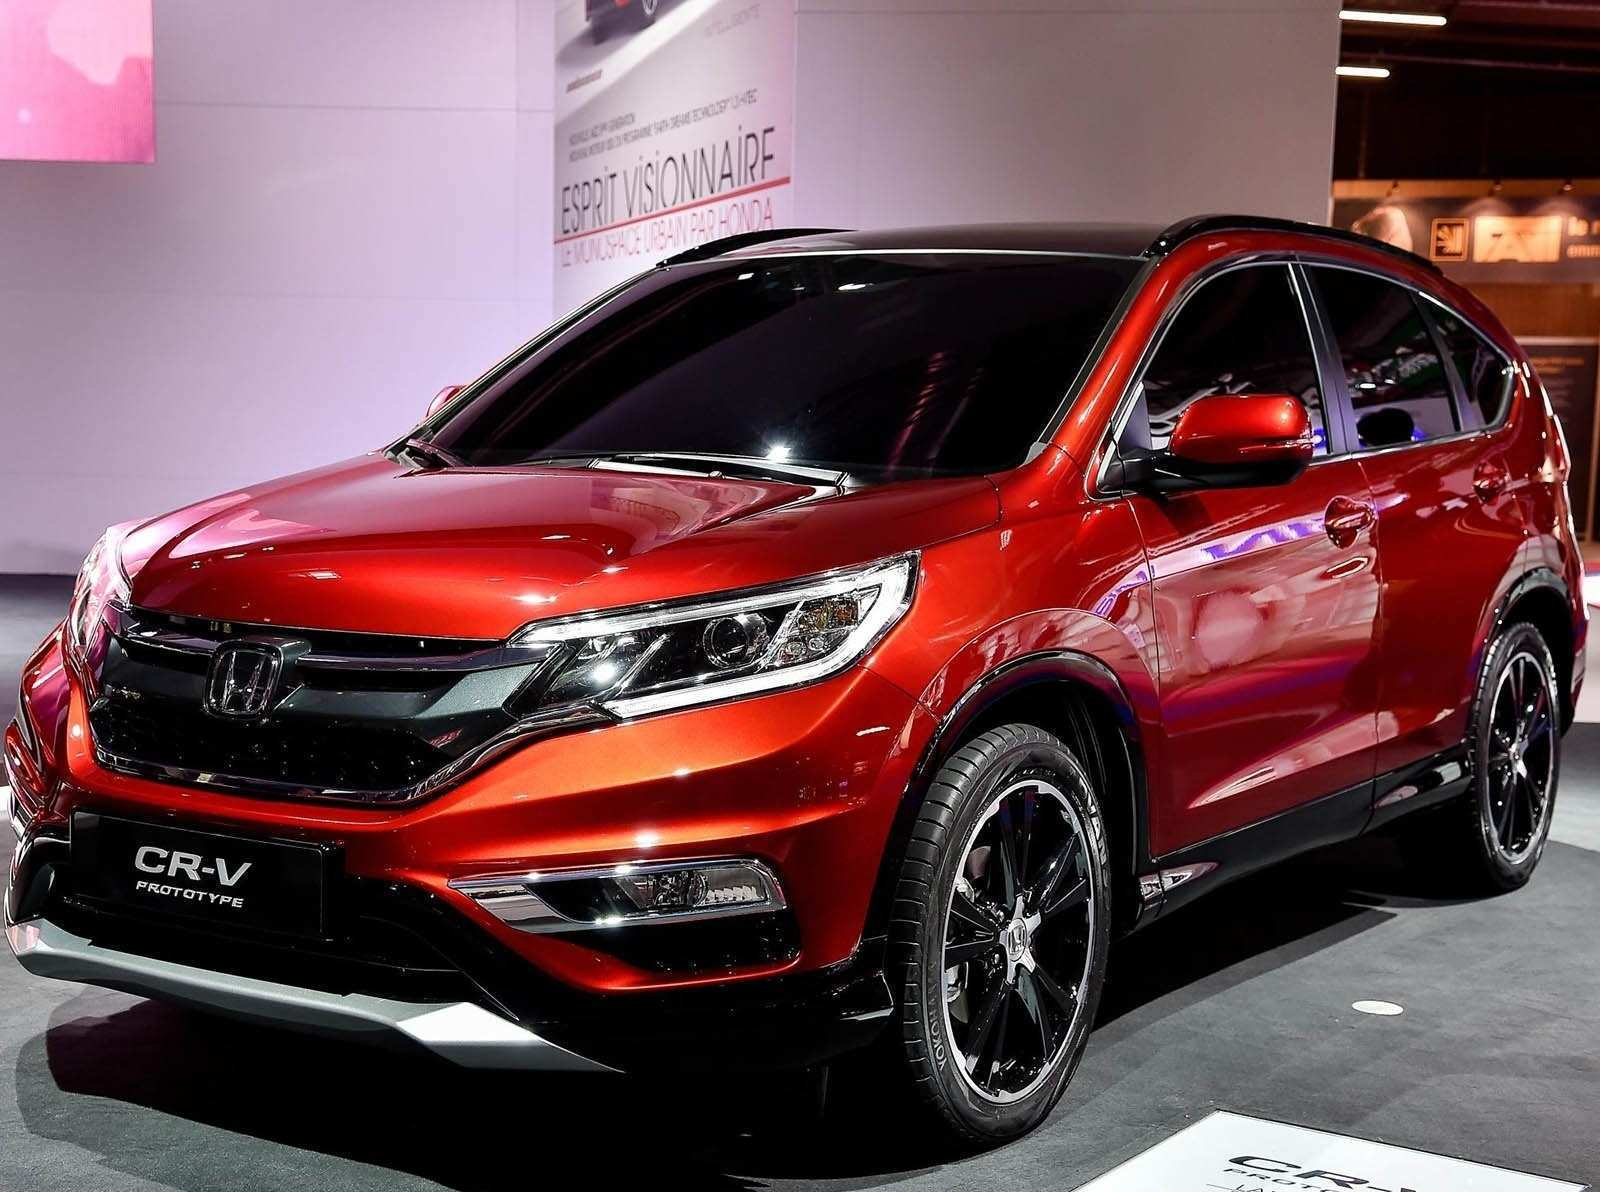 68 All New 2020 Honda CR V Model